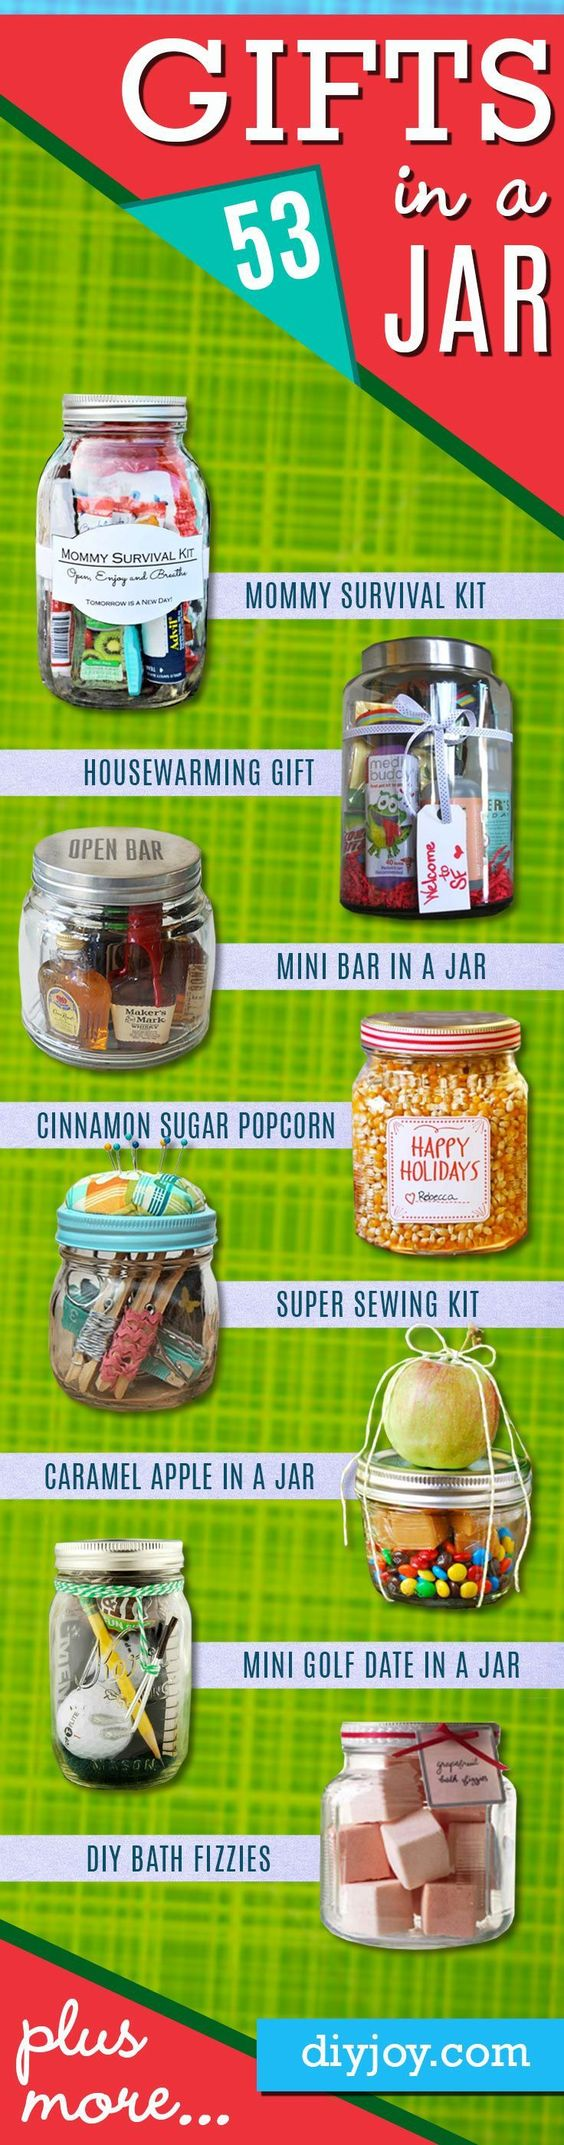 diy office gifts. best 25 mason jar gifts ideas on pinterest in jars favors and gift diy office